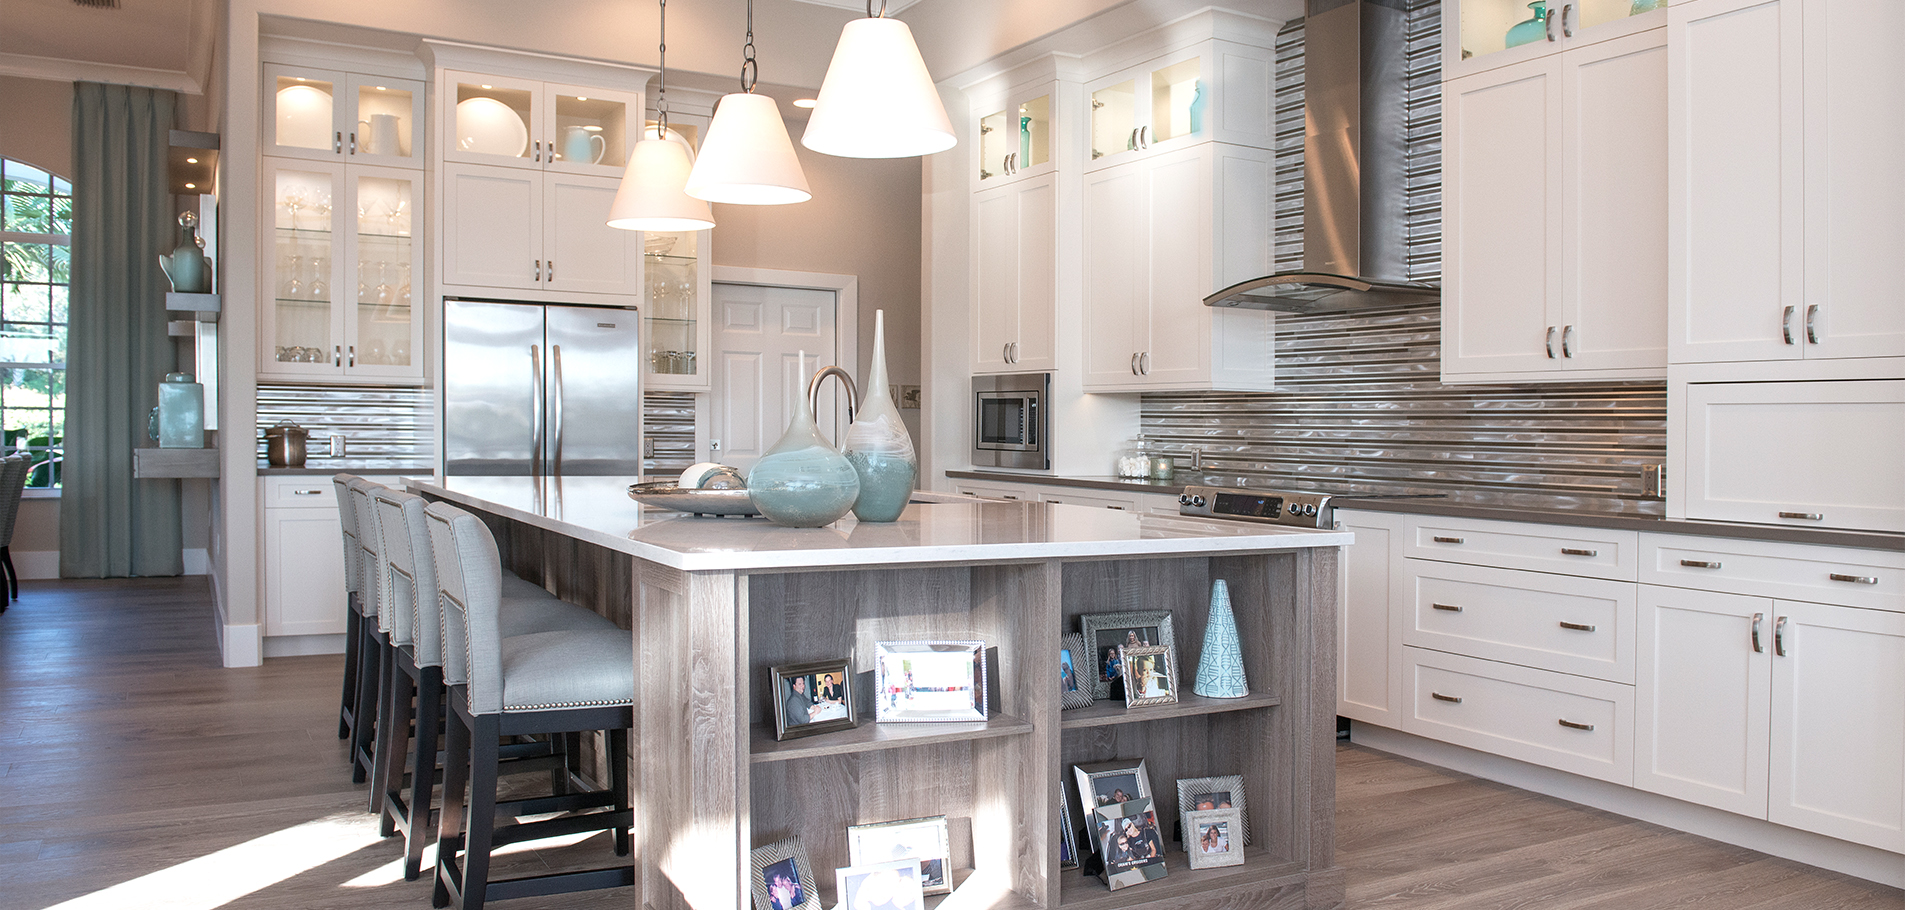 Luxury Kitchen Remodel | Naples Kitchen & Bath